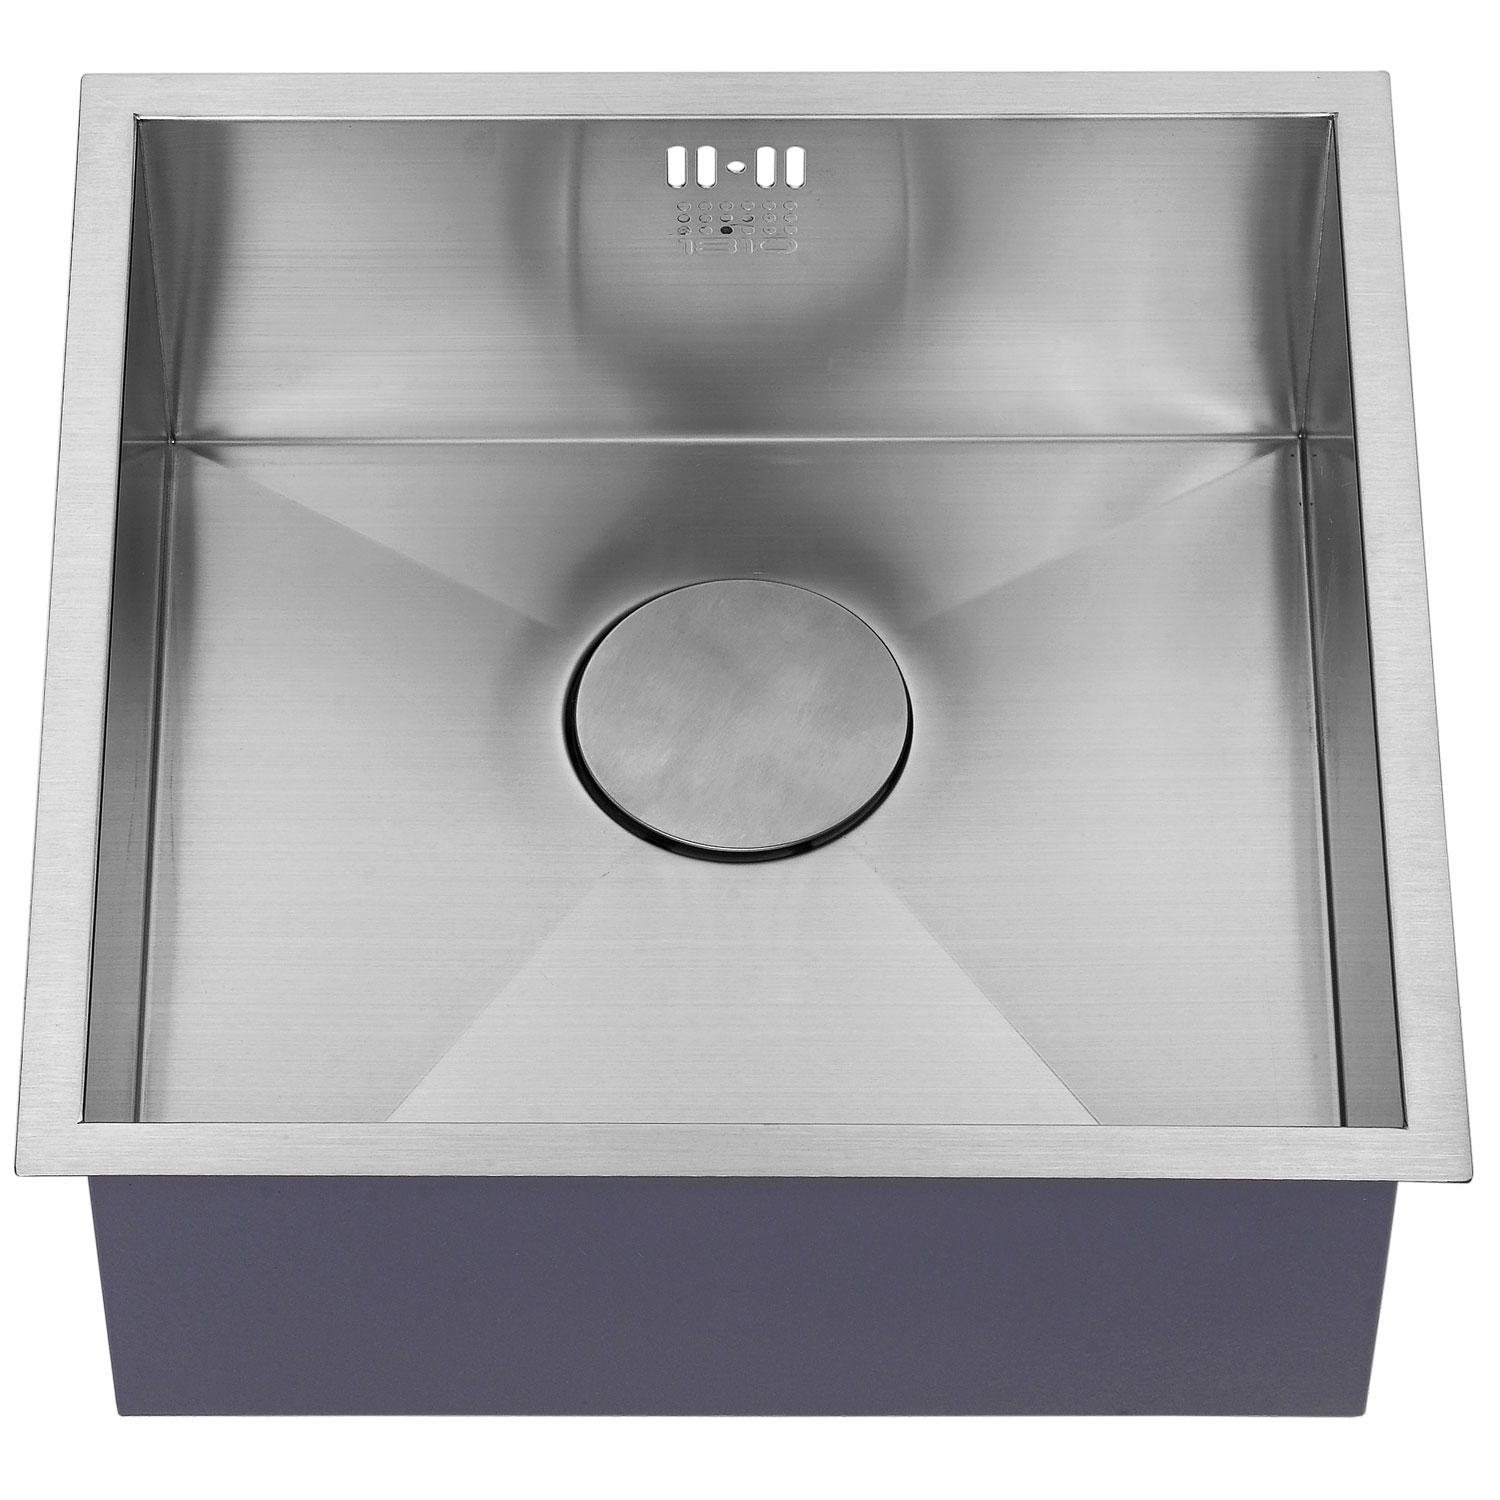 The 1810 Company Zenuno 400U 1.0 Bowl Kitchen Sink - Stainless Steel